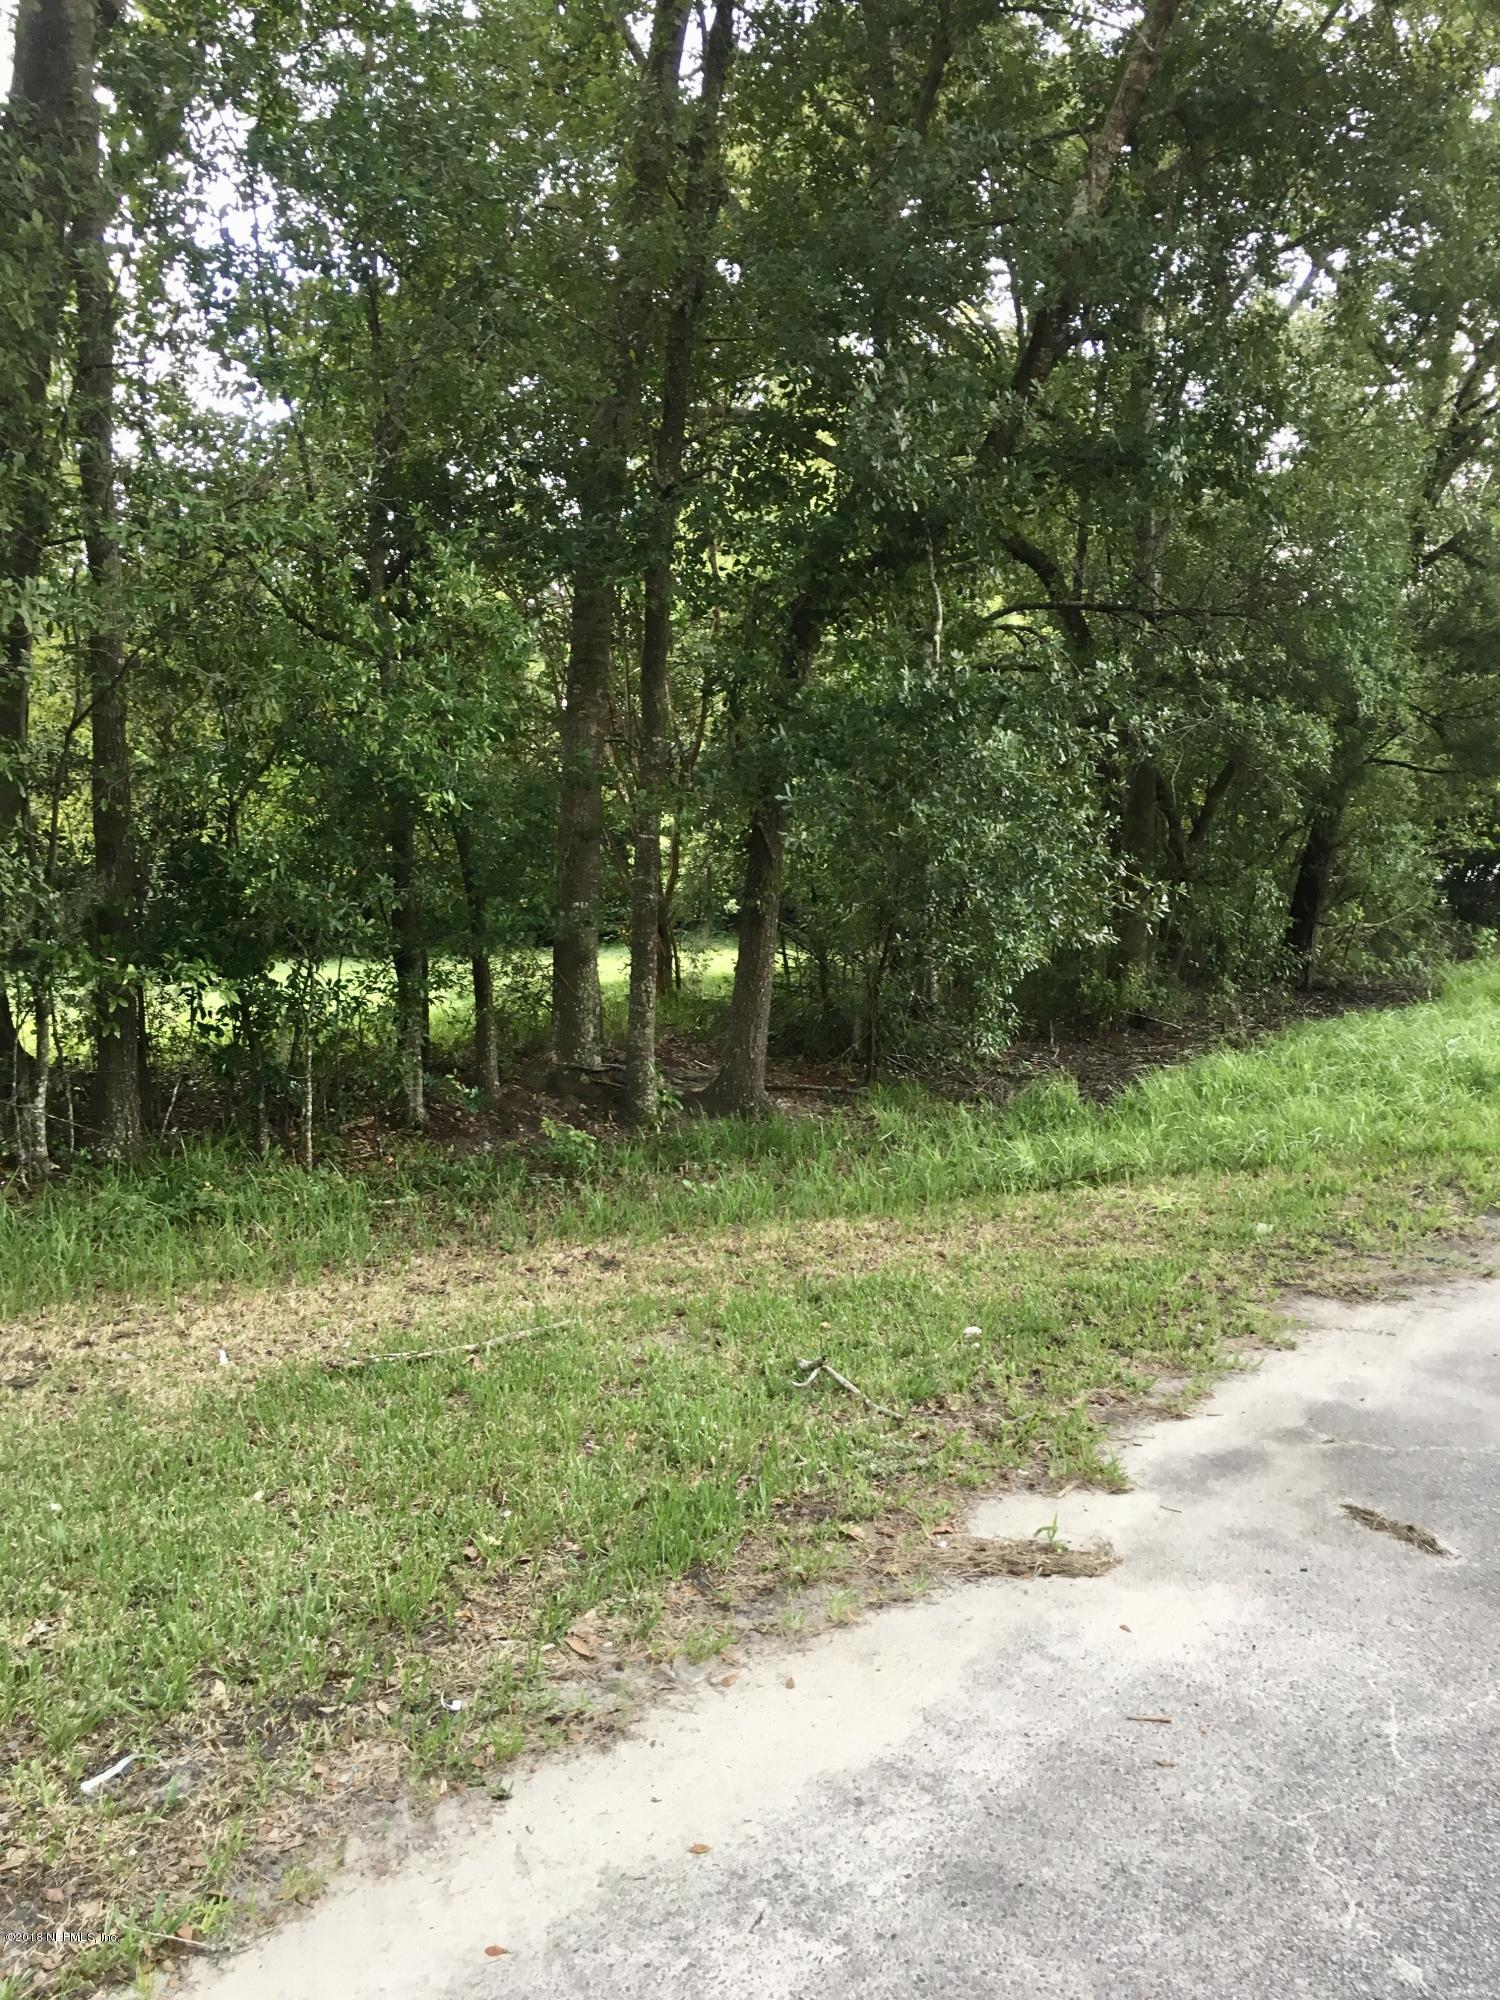 530 LEWIS, MACCLENNY, FLORIDA 32063, ,Vacant land,For sale,LEWIS,953879